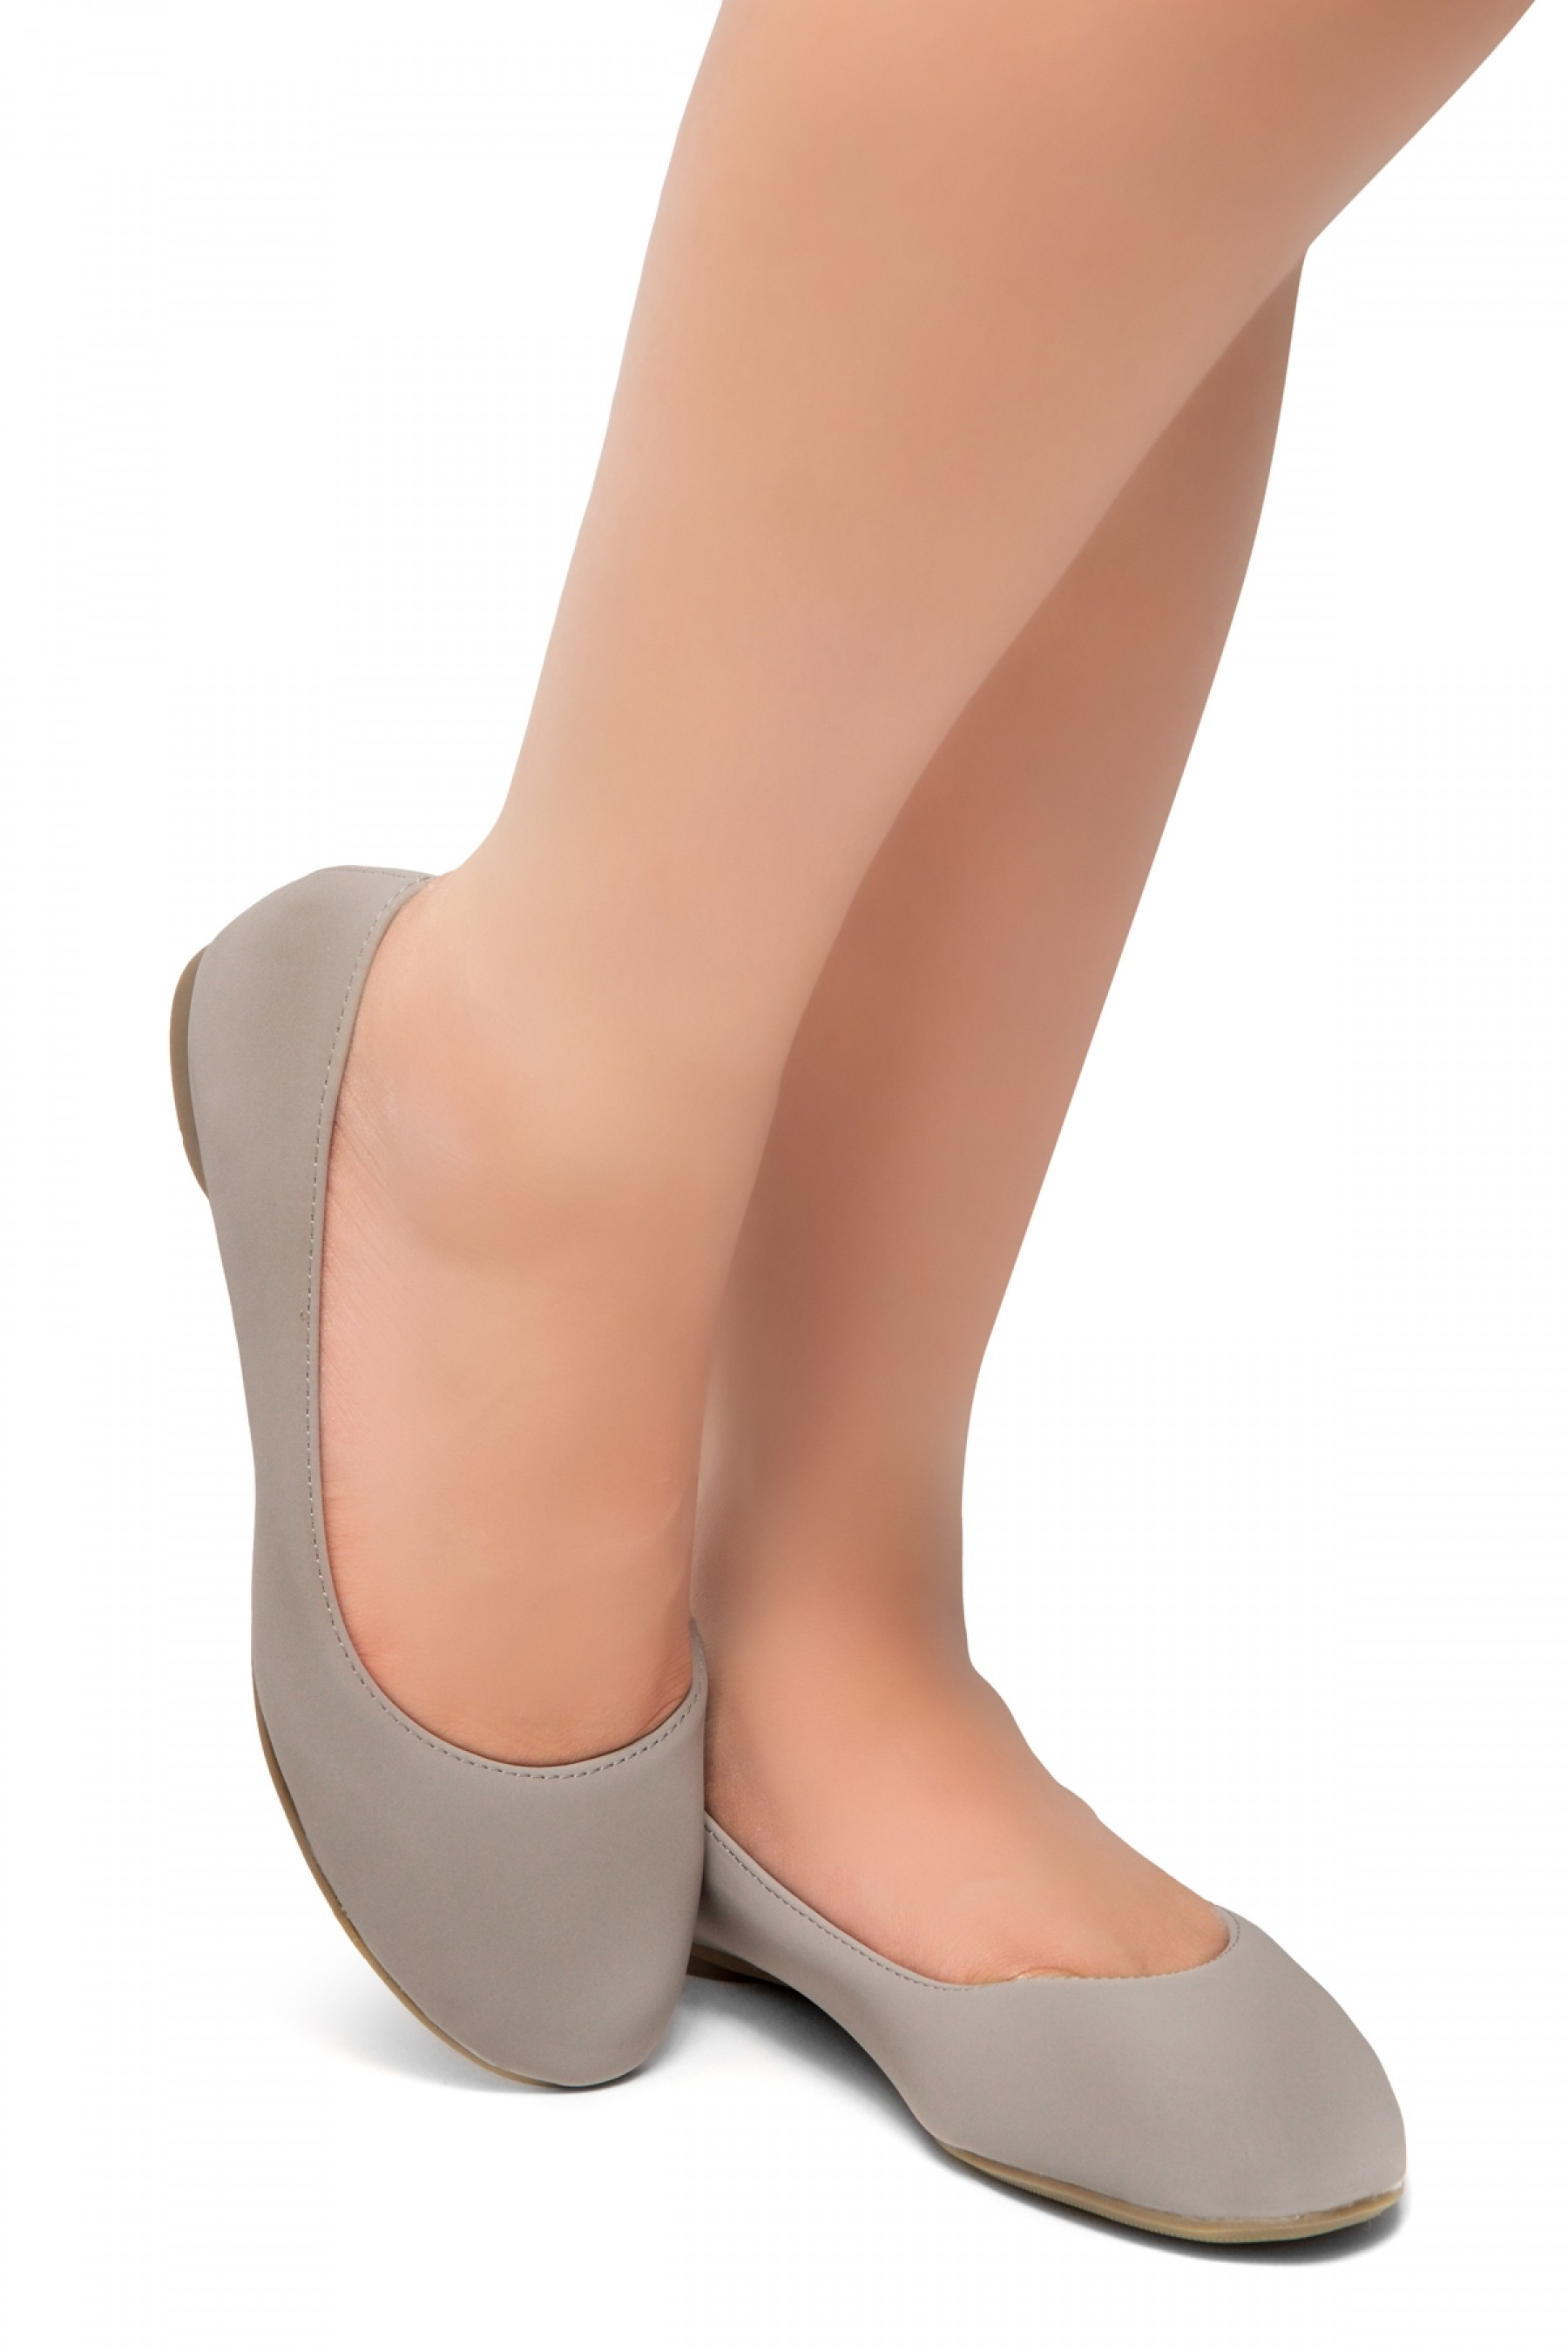 HerStyle Ever Memory -Almond Toe, No detail, Ballet Flat (Grey)